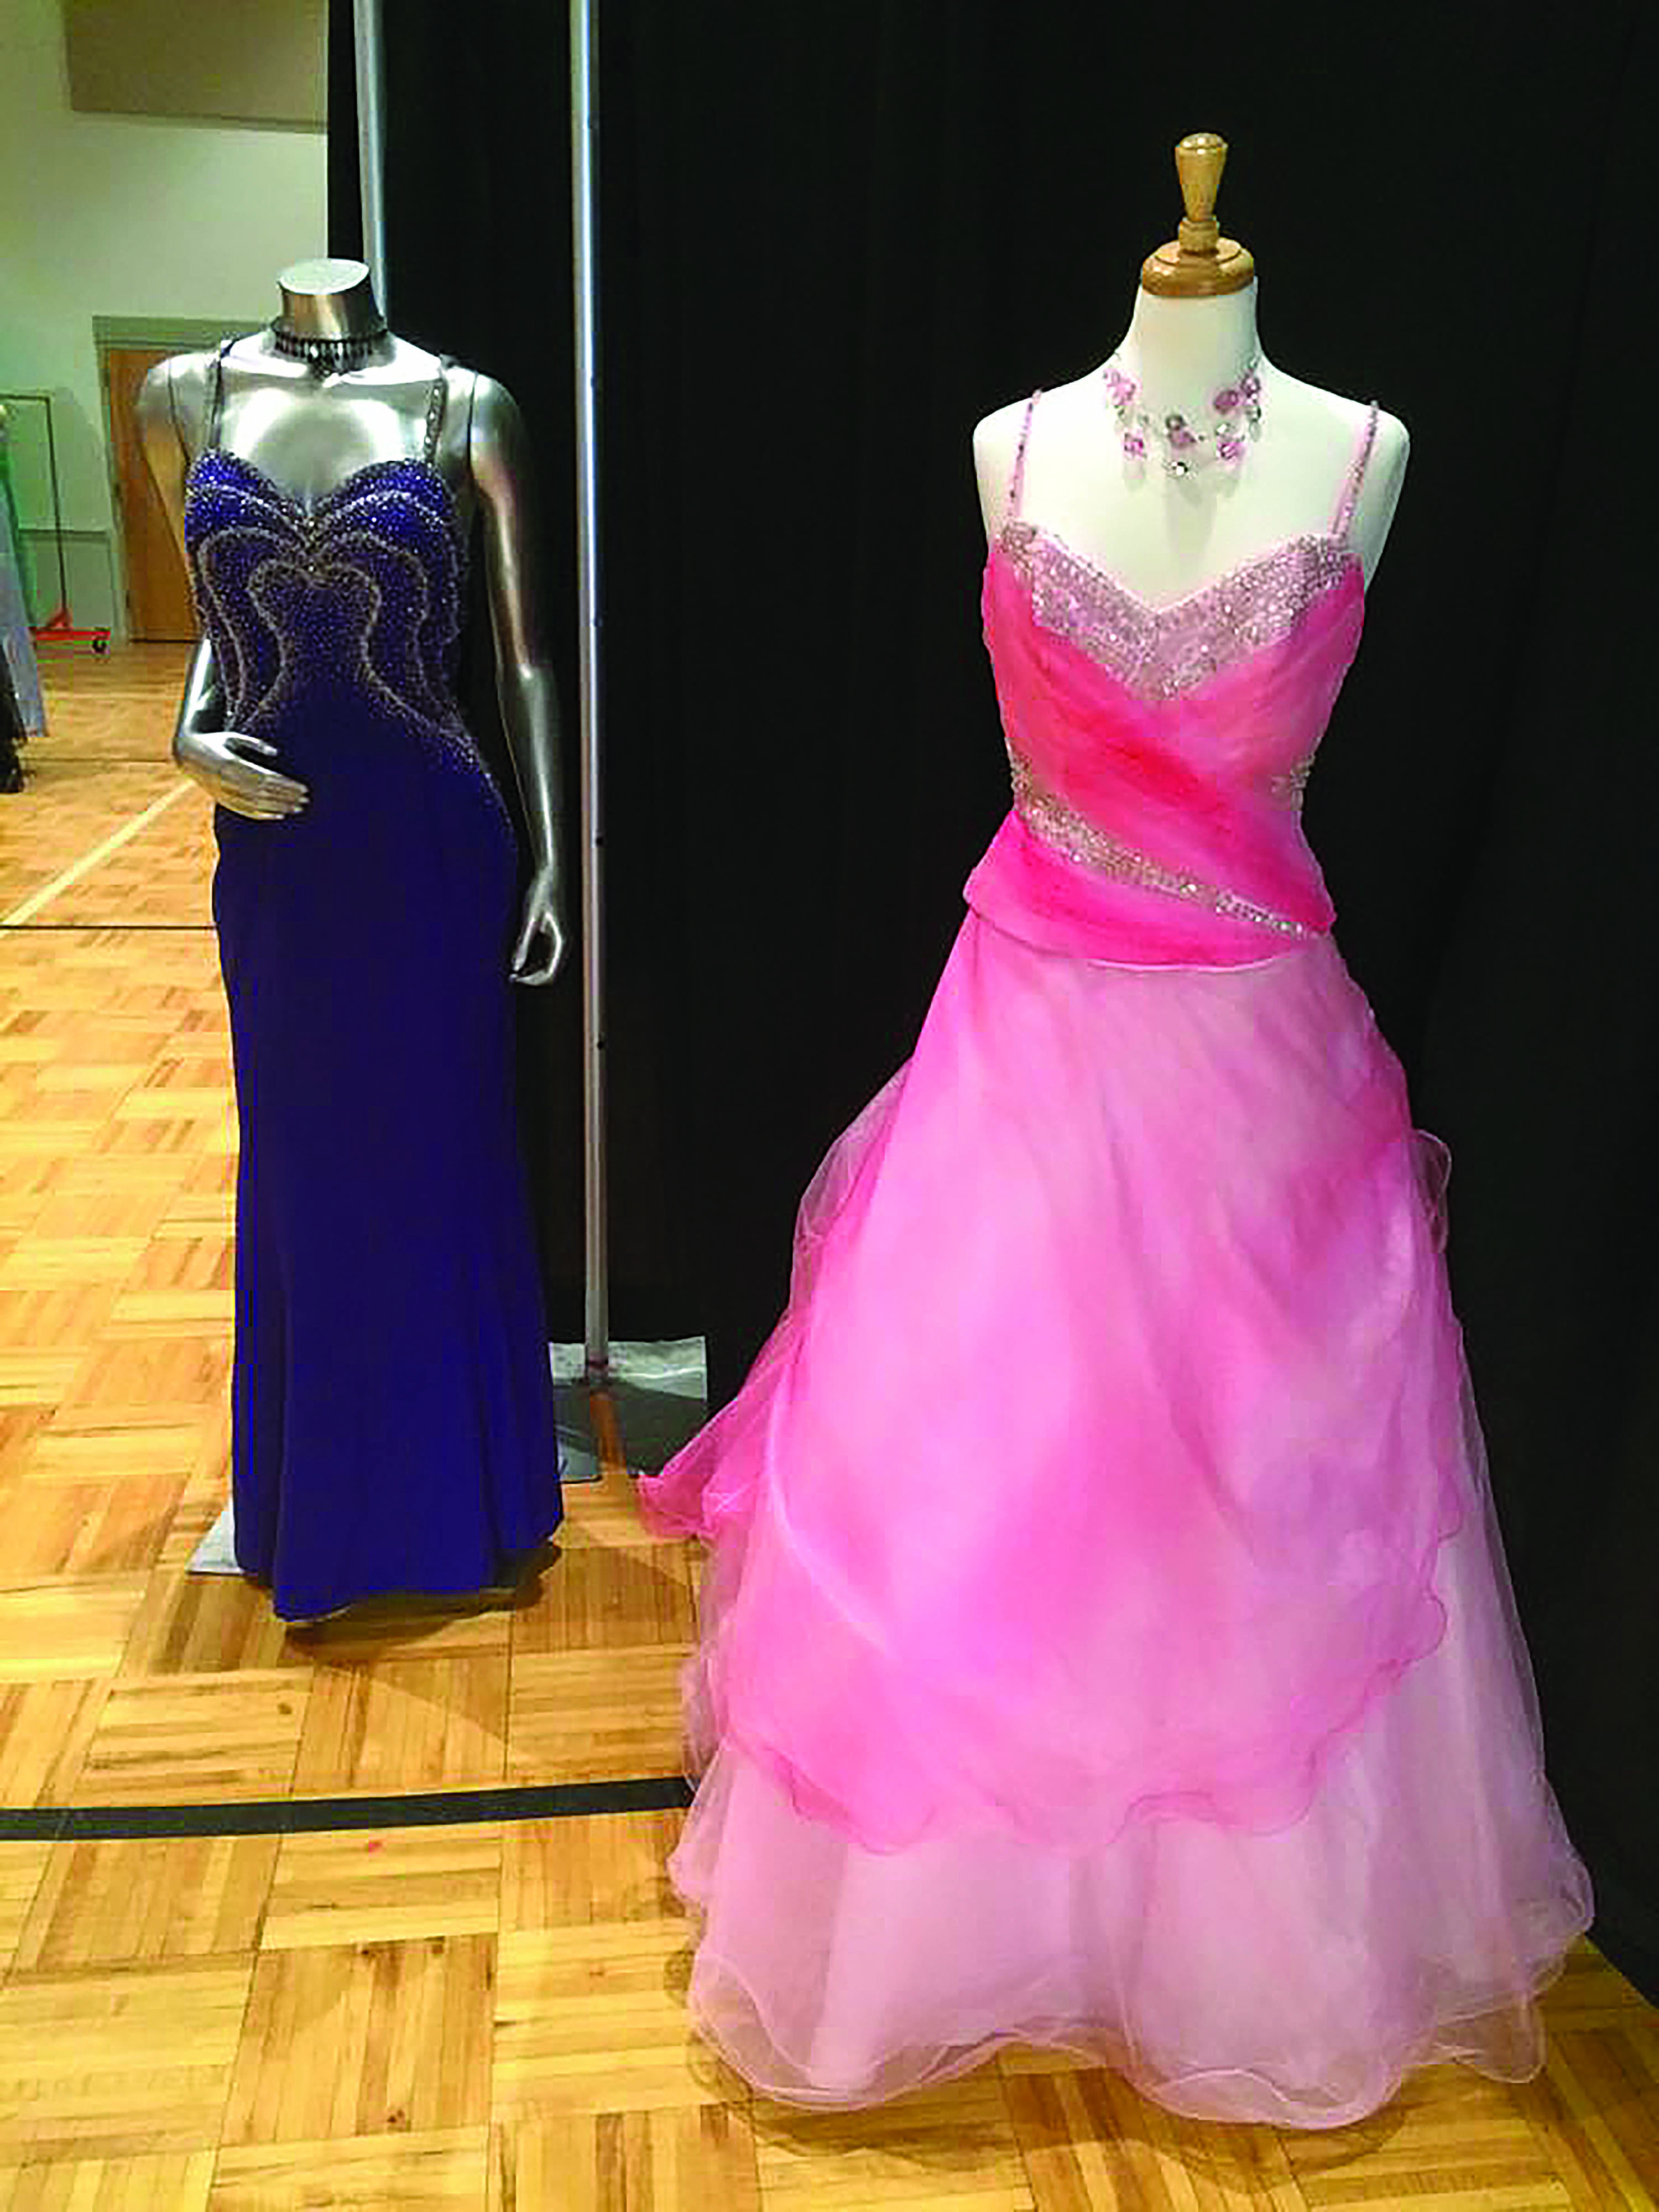 An Extraordinary Mission Provides the Perfect Prom Gown 				By Amy Iori